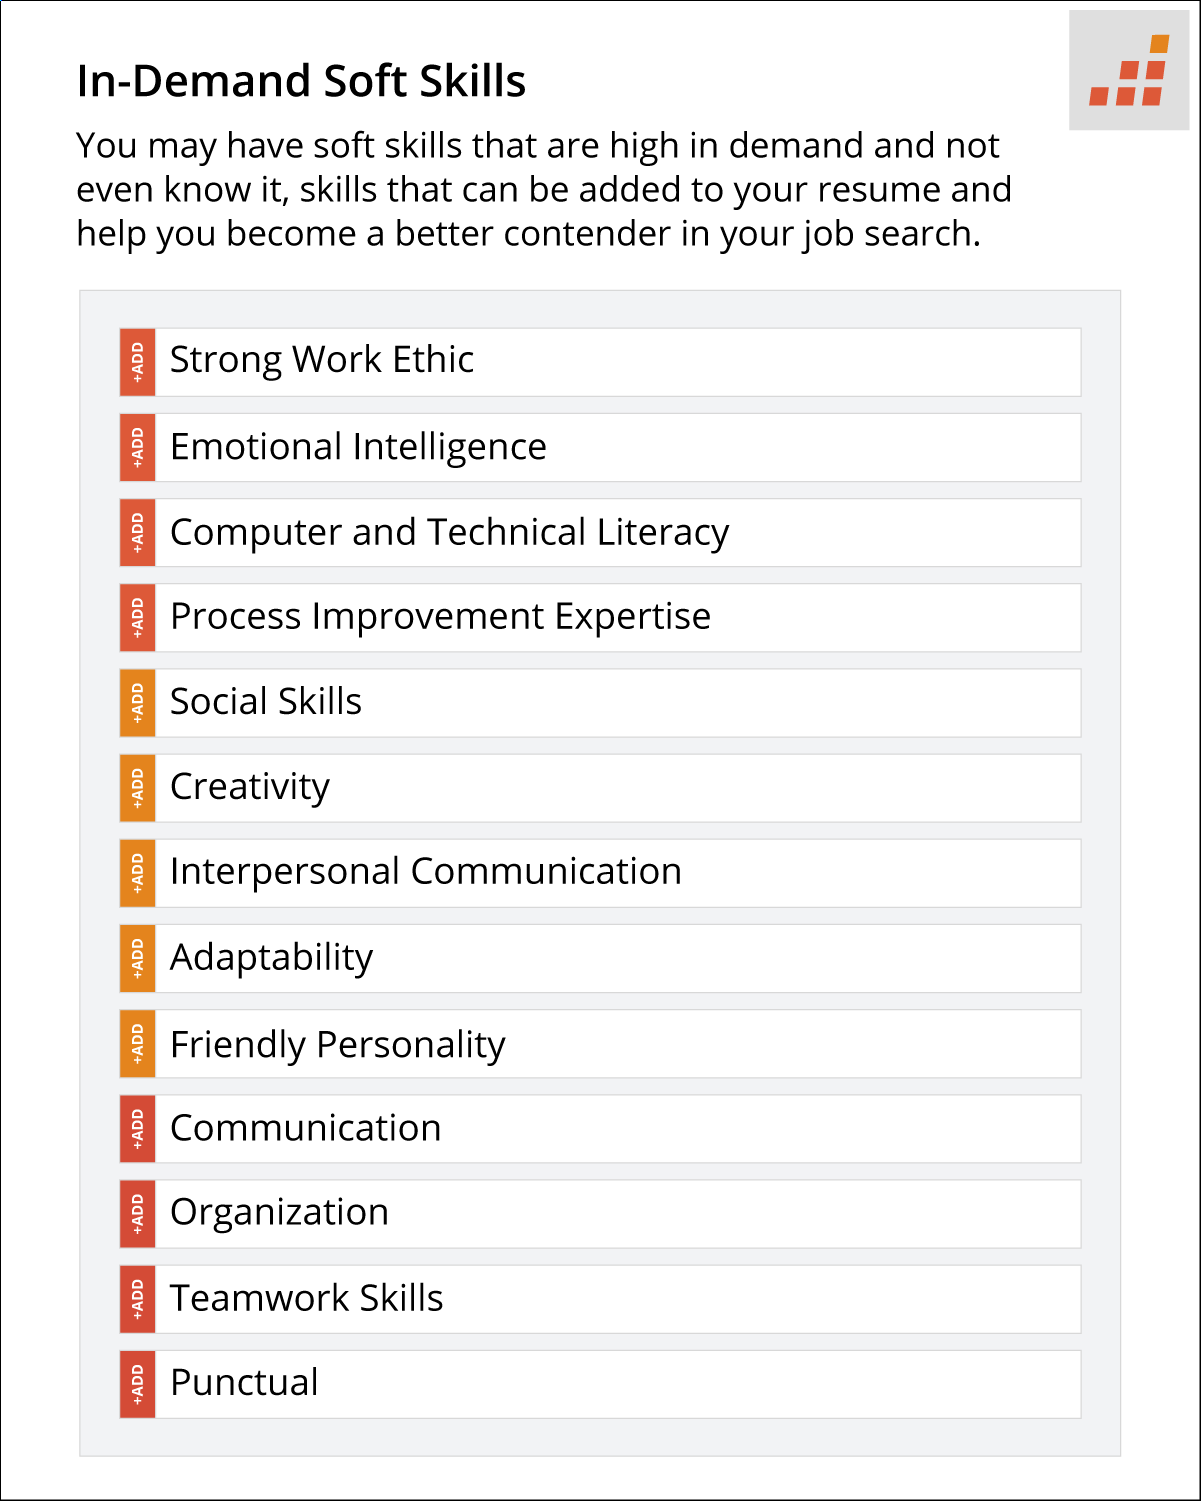 Soft Skills To Add To Your Resume In 2020 Resume Skills List Resume Skills Section Good Customer Service Skills